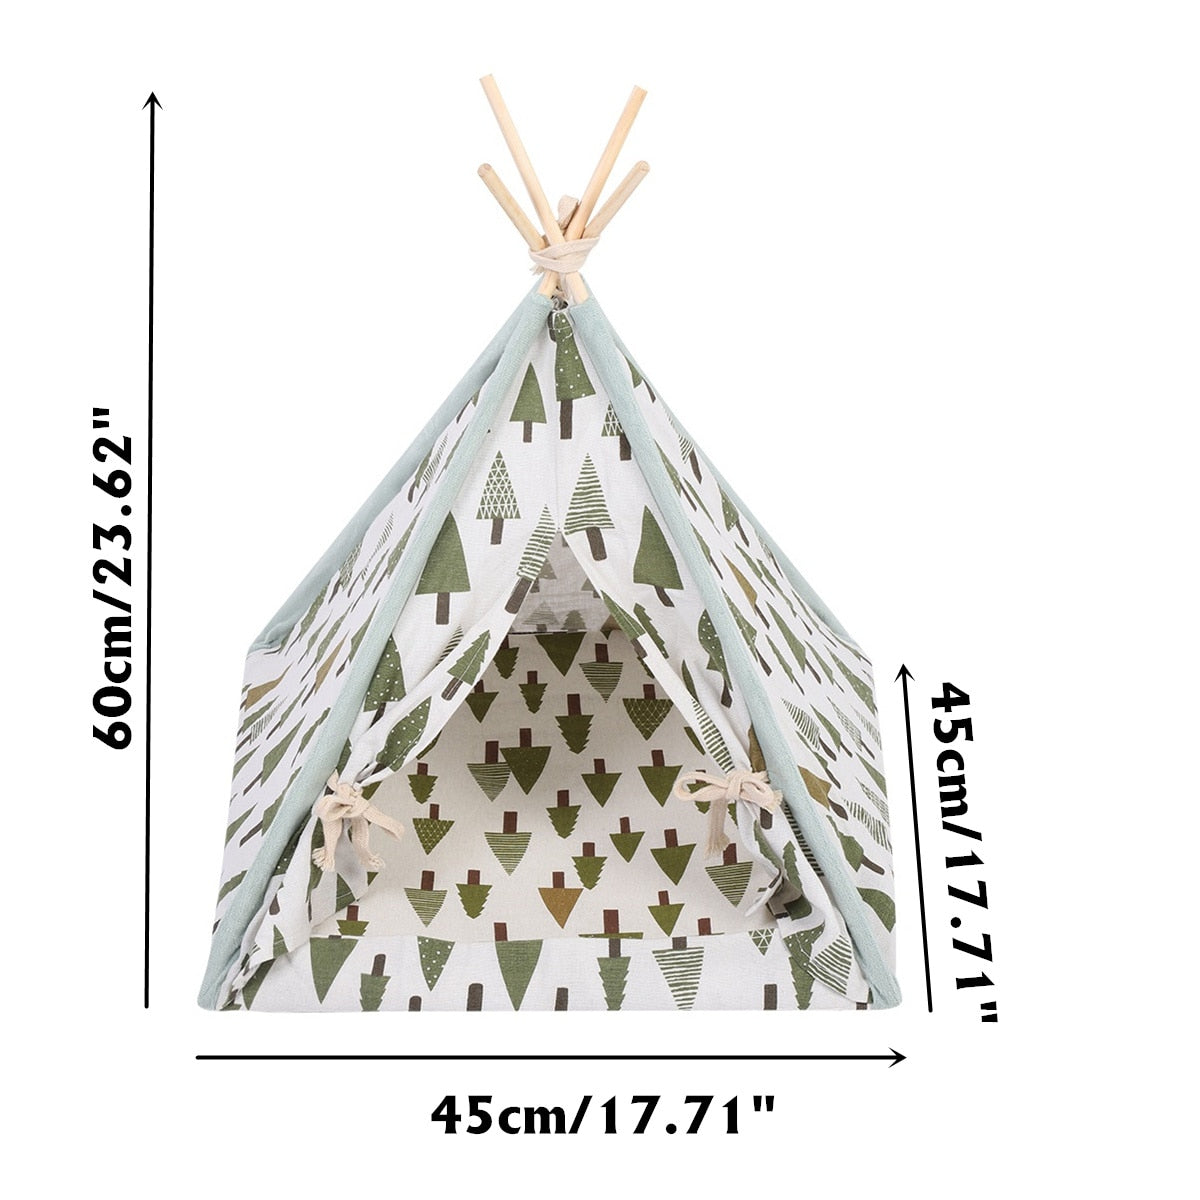 Large Foldable Linen Pet Washable Indoor & Outdoor Portable Teepee - Harris & Bains Pet Shop